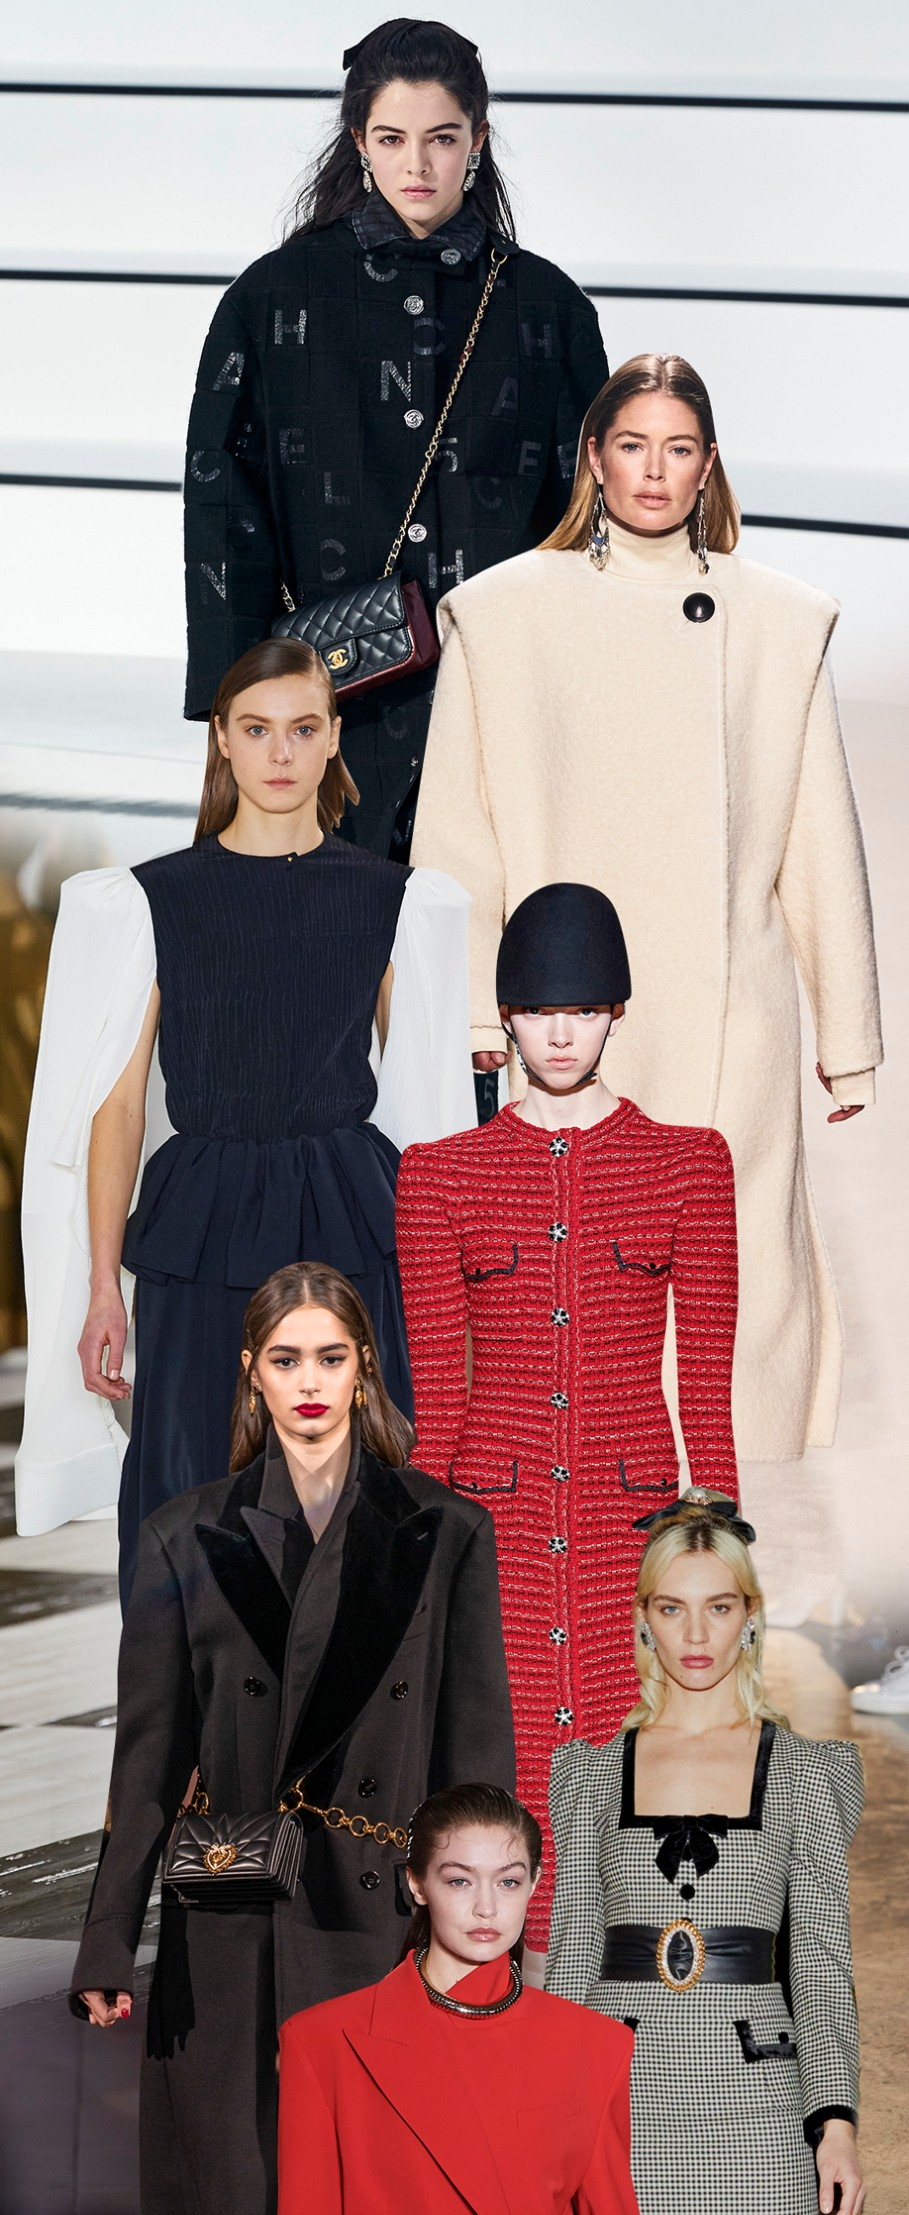 The Hottest And Most Coveted Fashion Trends From The Fall 2020 Runways (5) fashion trend The Hottest And Most Coveted Fashion Trends From The Fall 2020 Runways The Hottest And Most Coveted Fashion Trends From The Fall 2020 Runways 5